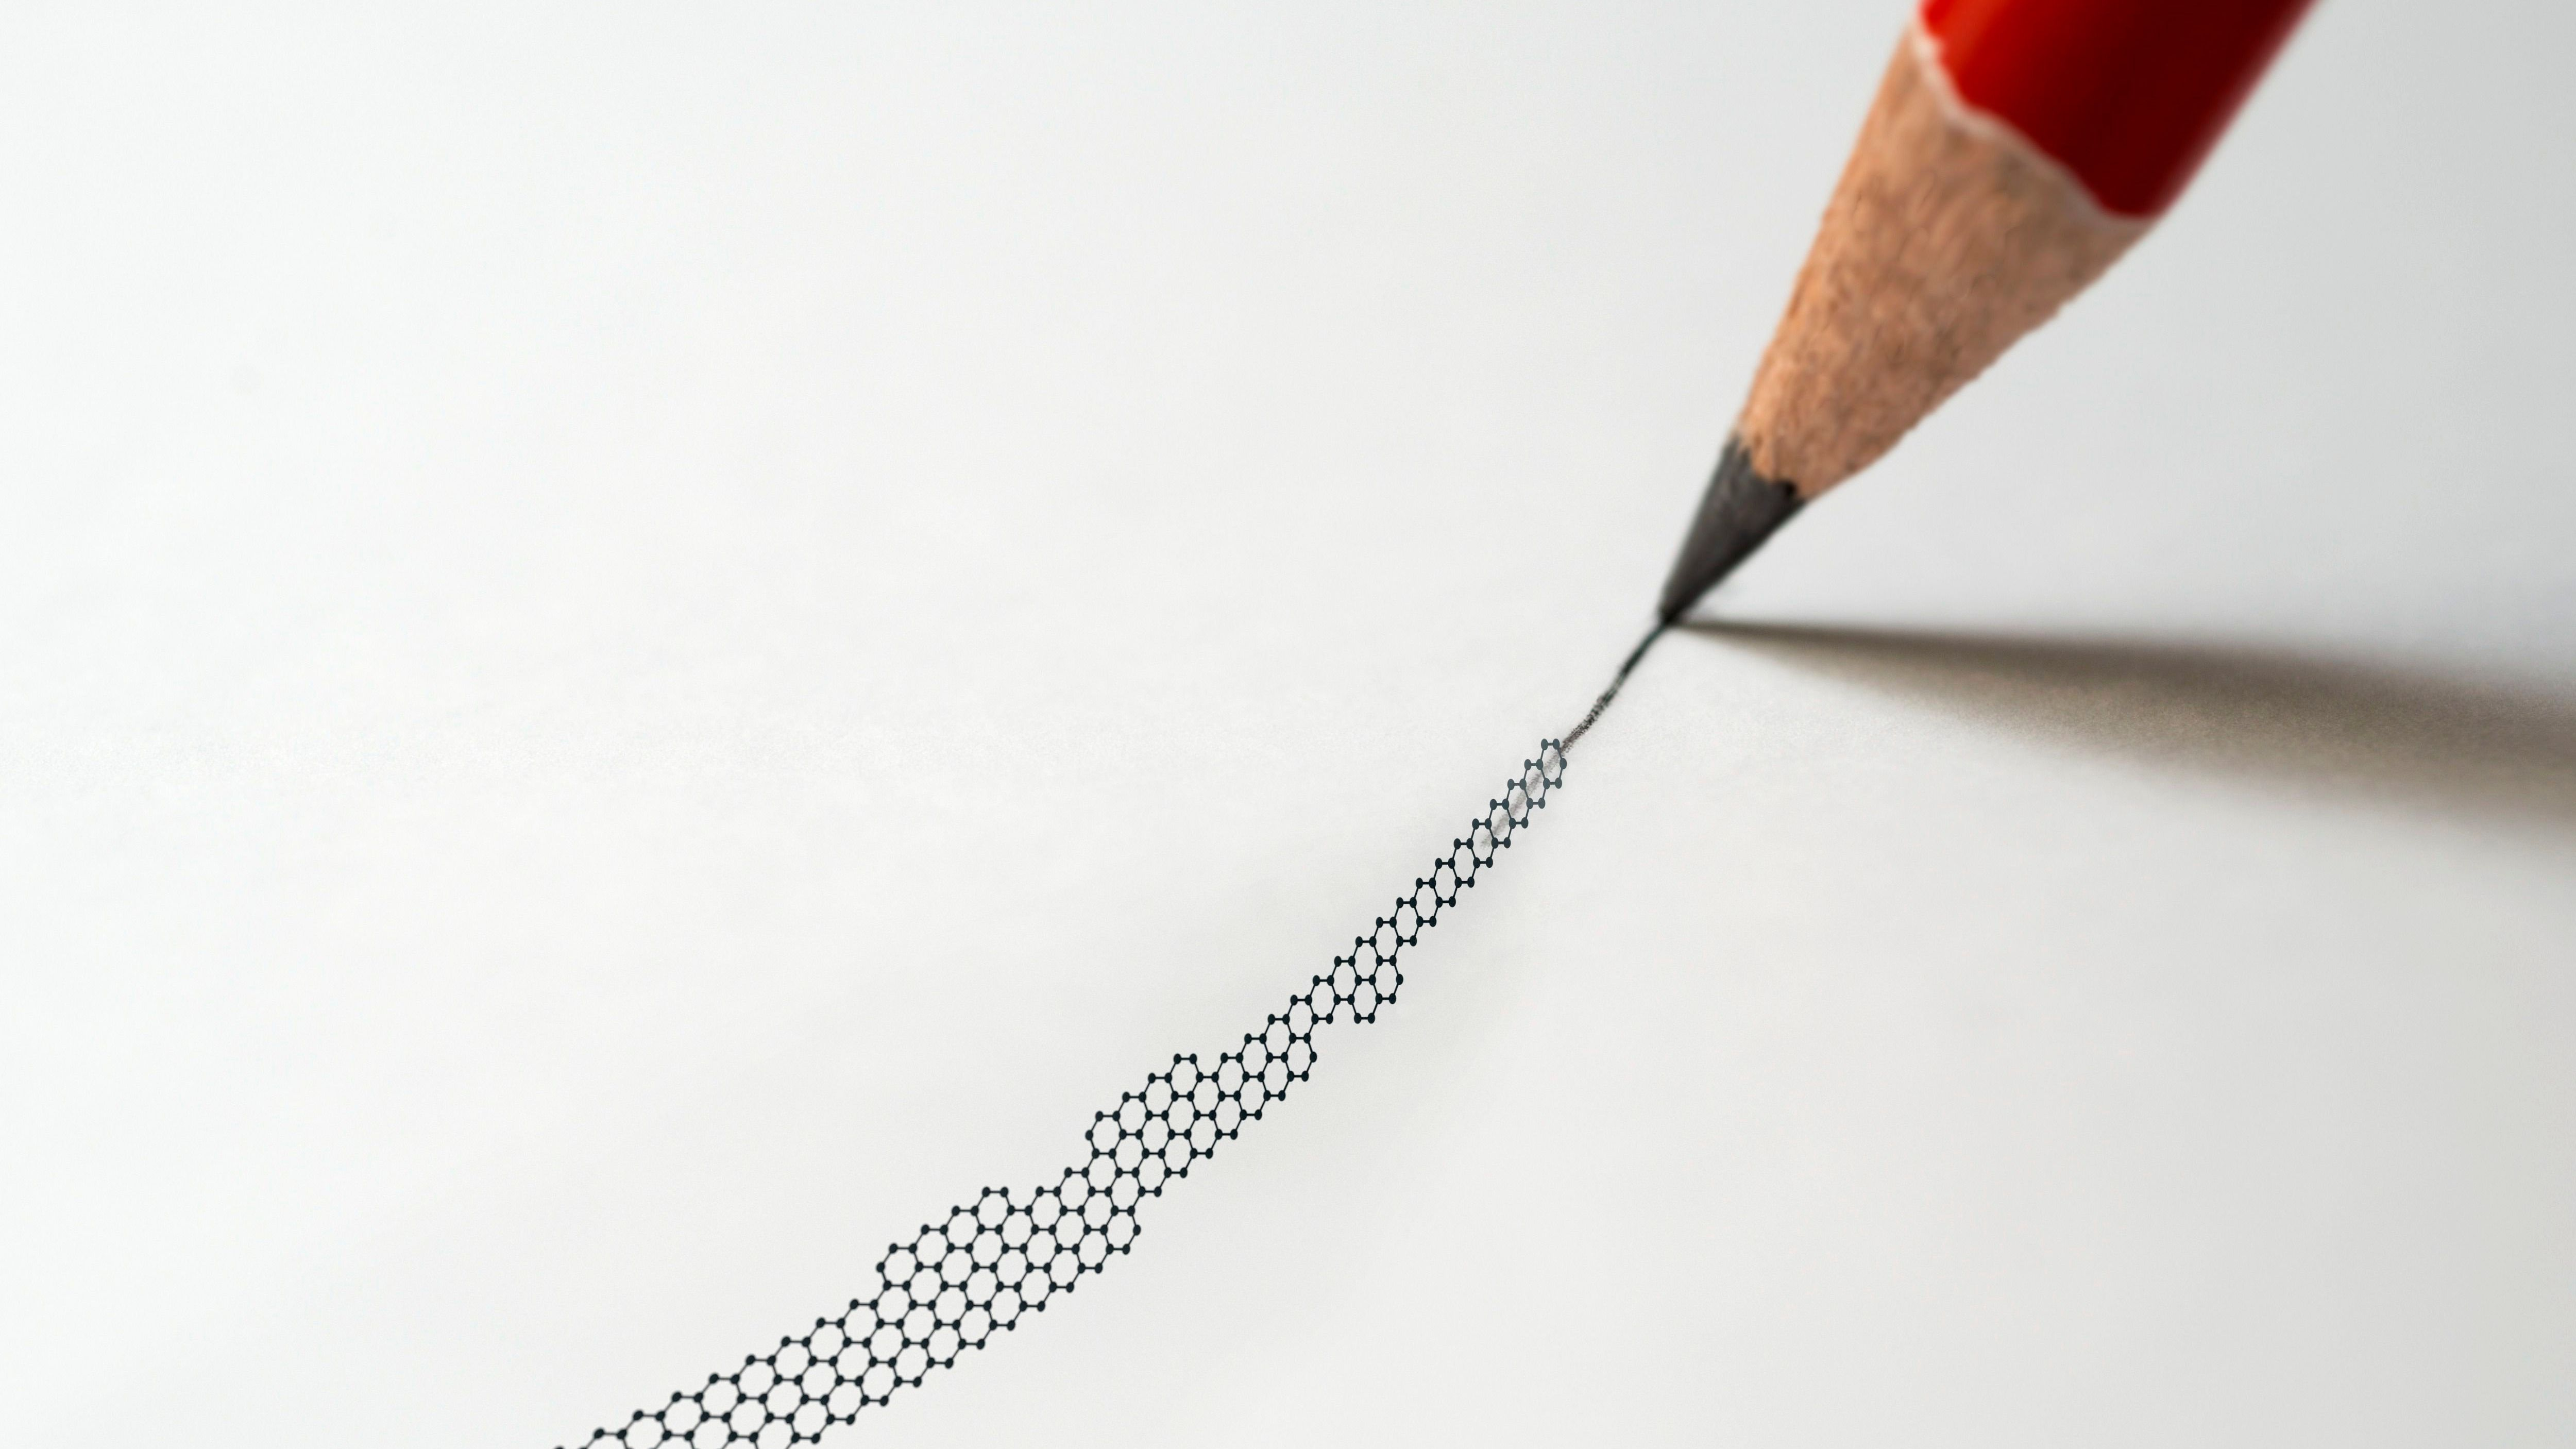 Tips for choosing a good drawing paper for graphite